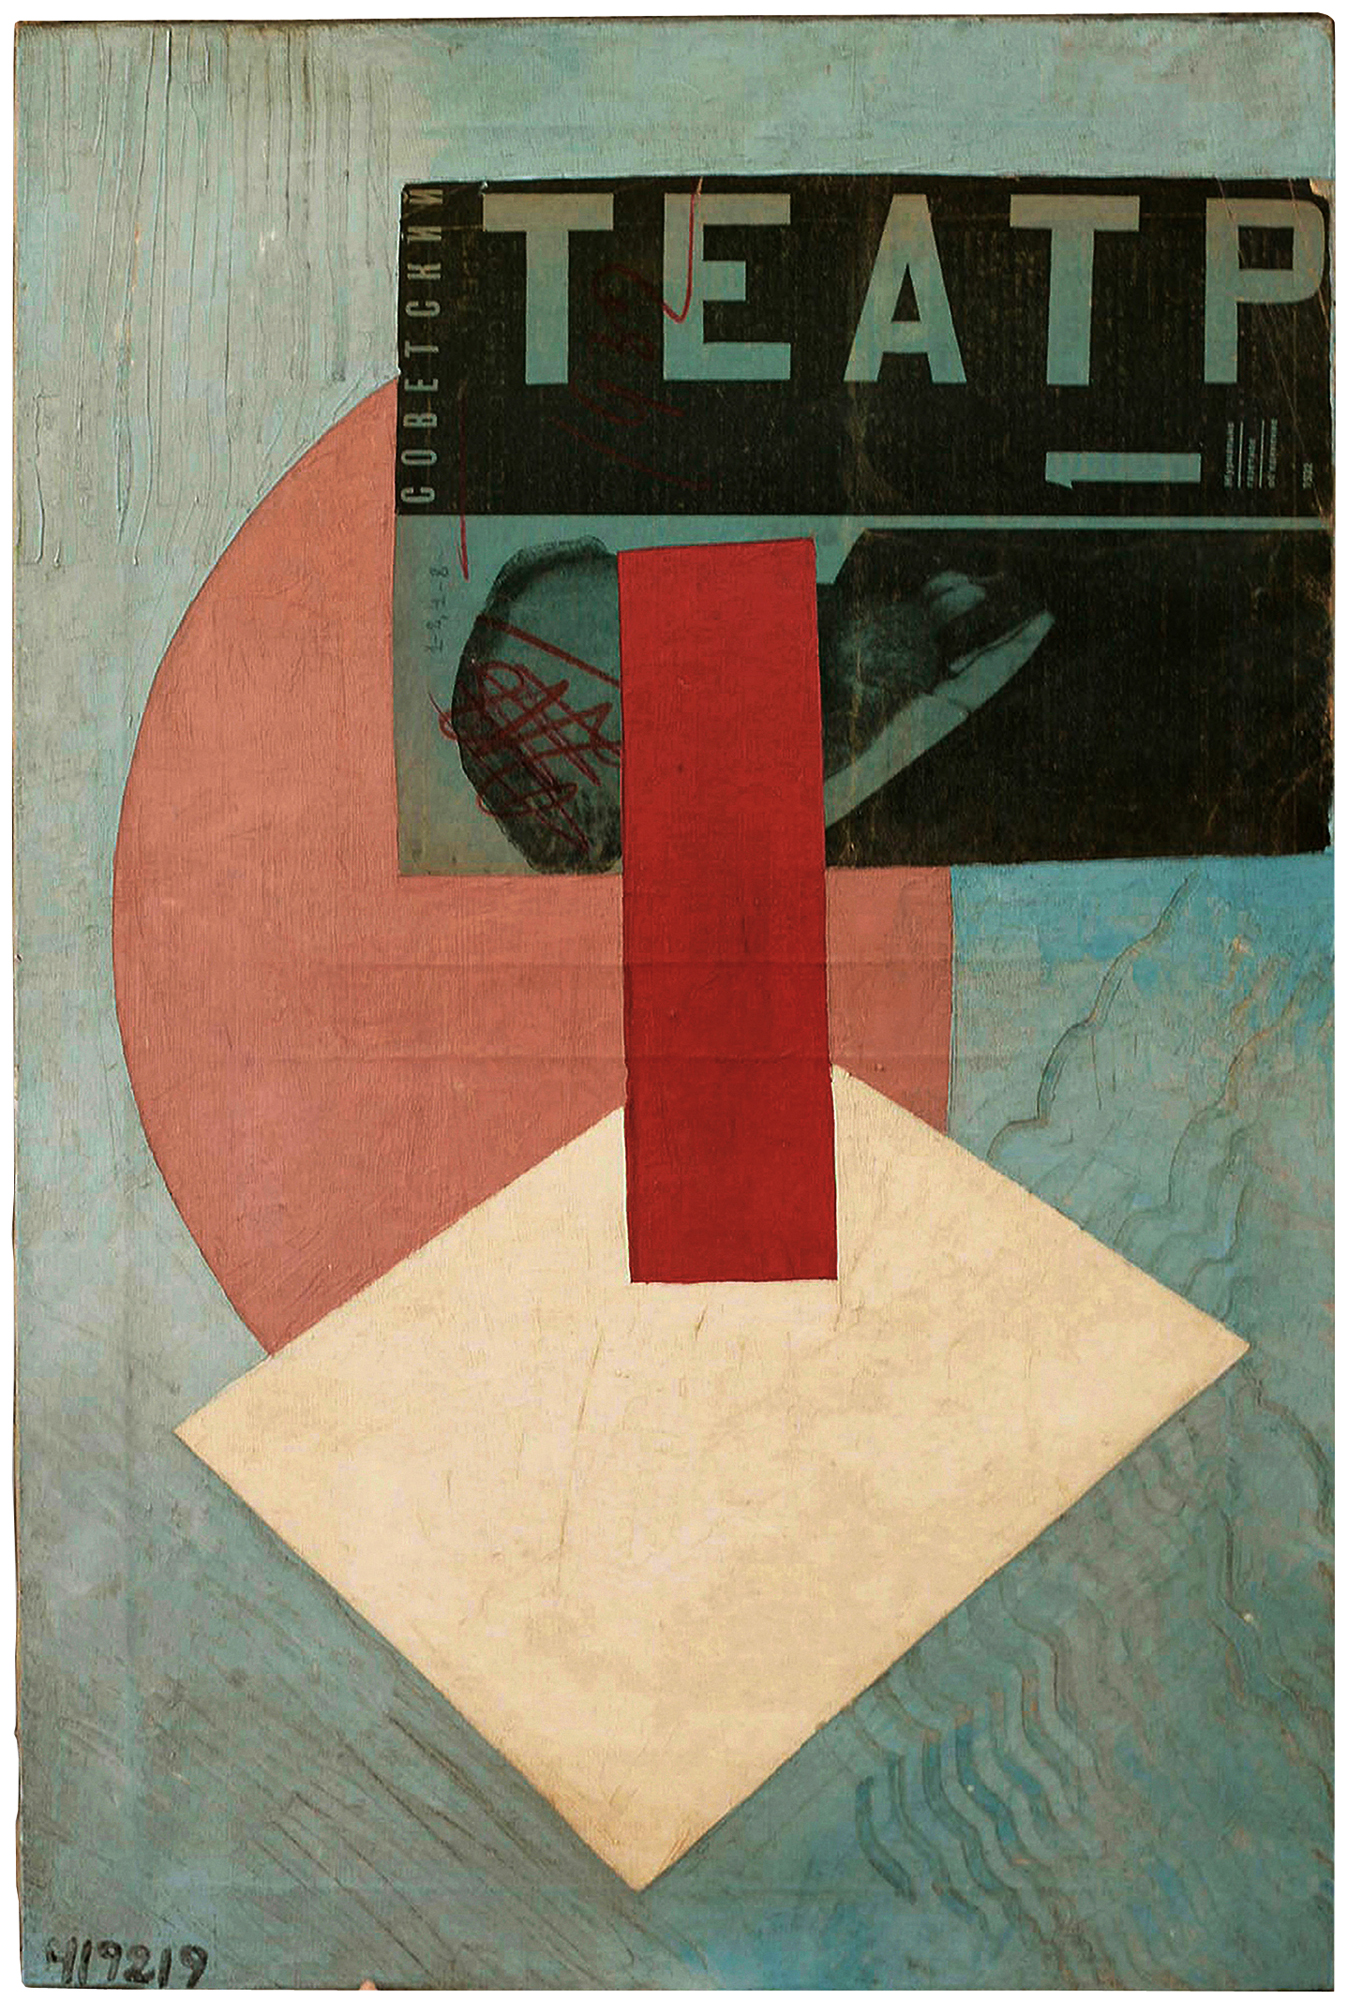 "Unattributed. Unsigned. In the style of Nathan Altman. ""419219"" on lower left front, with page from Soviet Theater no 1 magazine, 1932.  Mixed media on canvas. 60 x 40 cm."